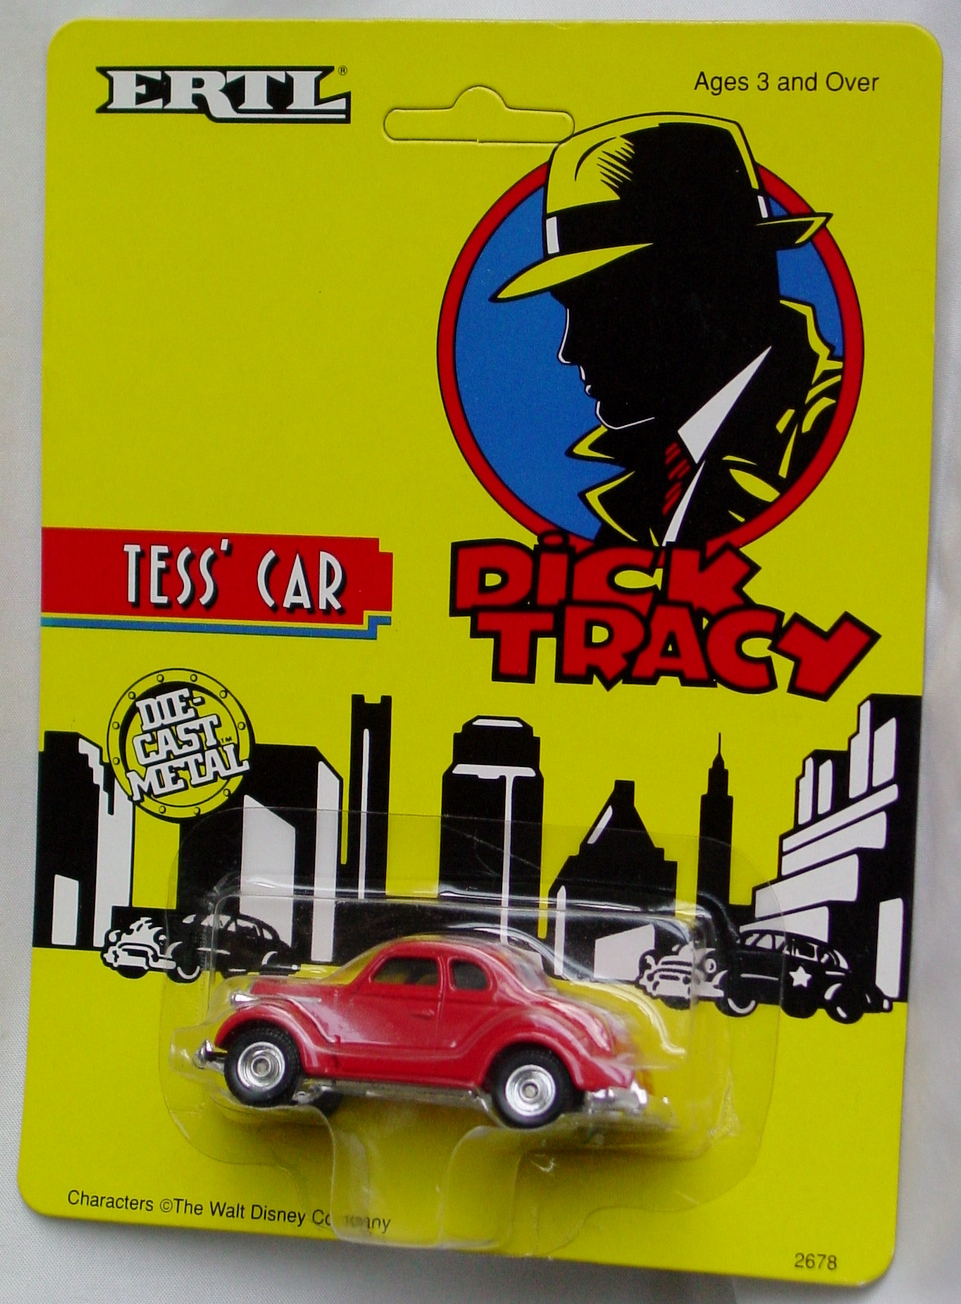 64 - ERTL DICK TRACY Tess Car